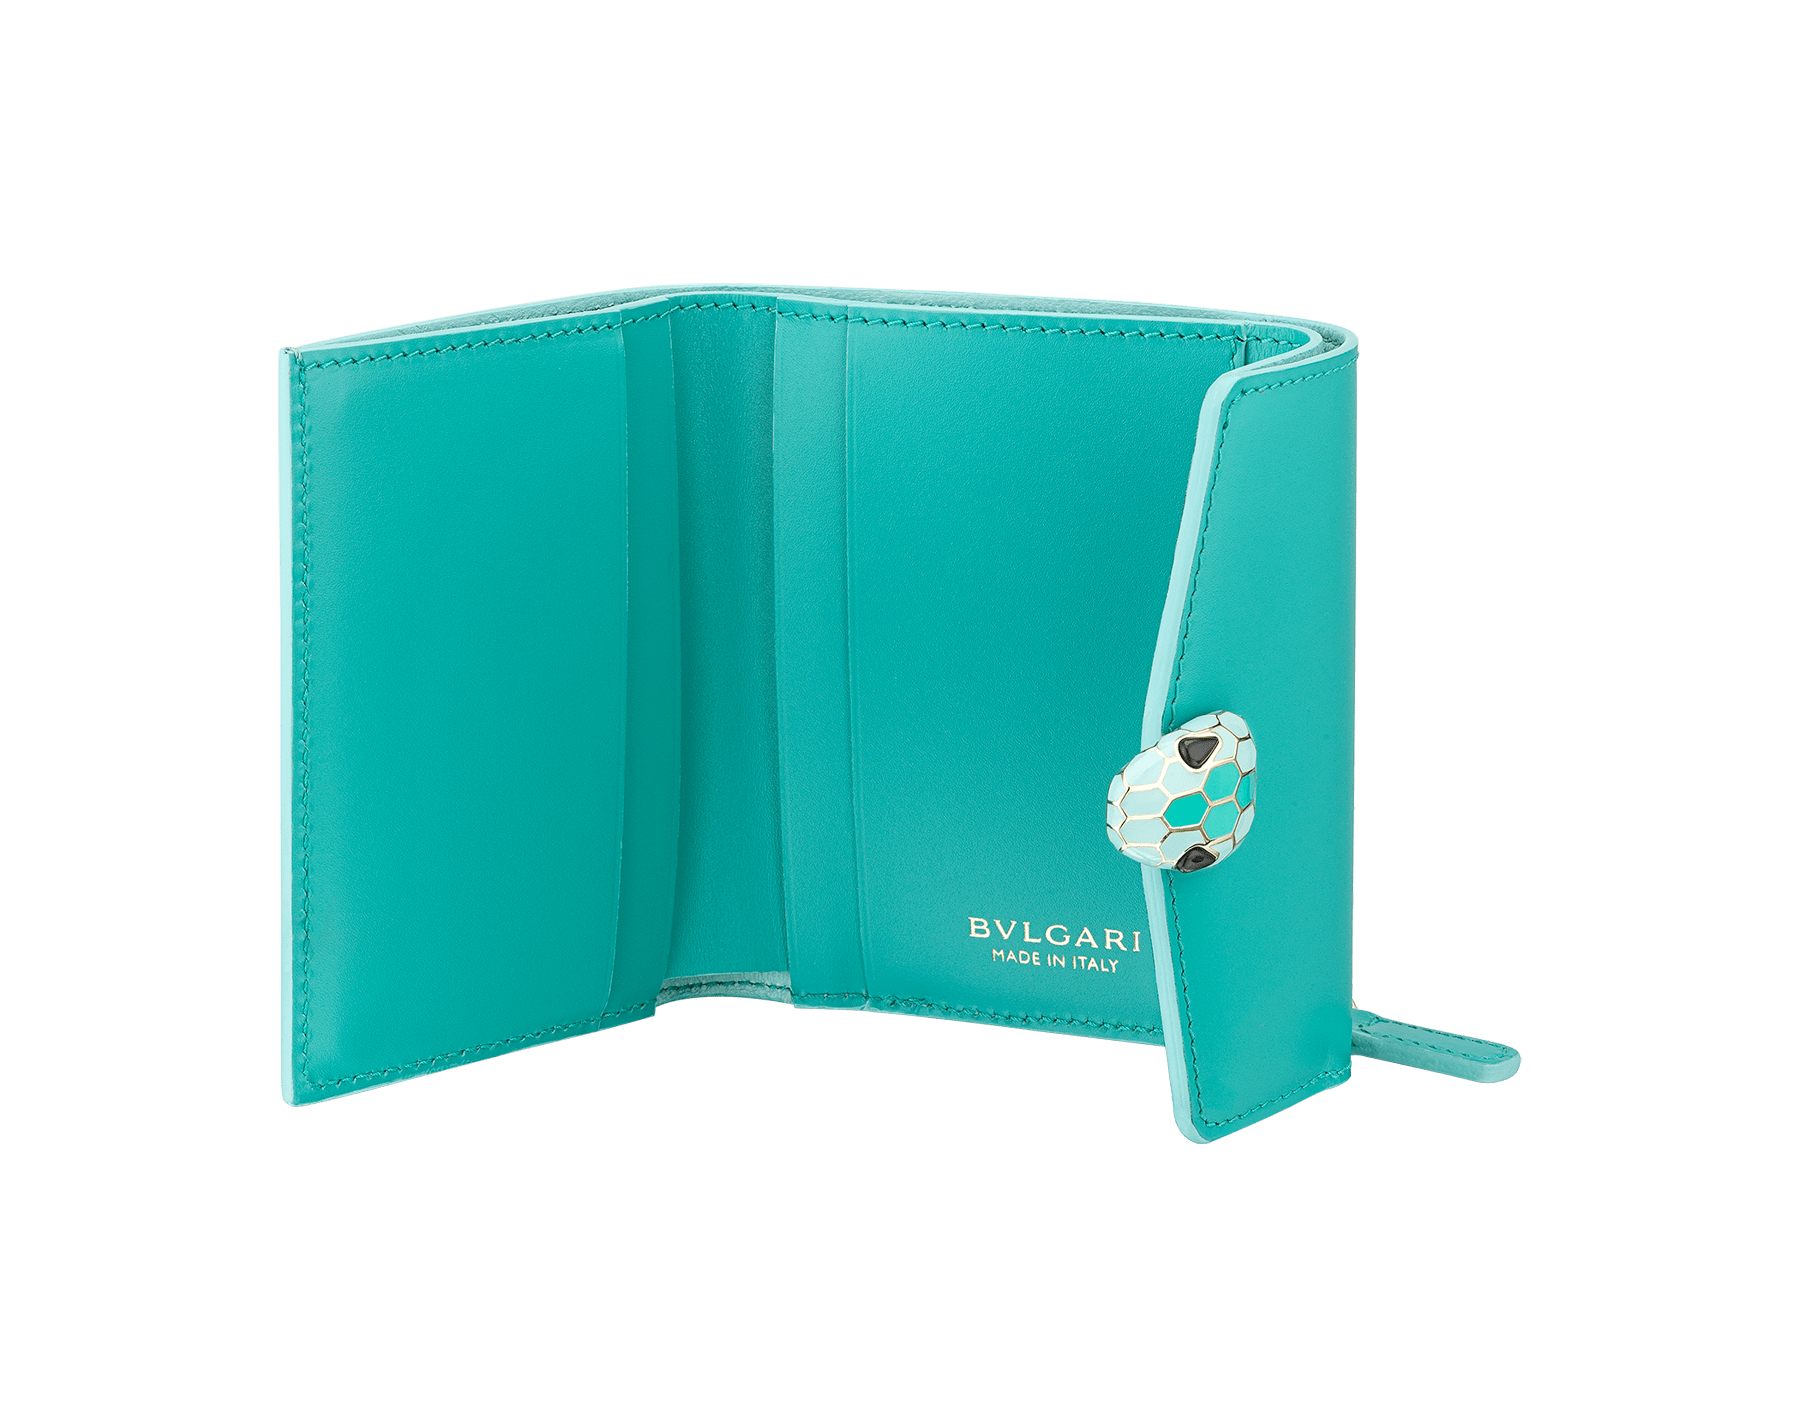 Serpenti Forever compact wallet in arctic jade calf leather and glacier turquoise goatskin. Iconic light gold plated brass snakehead stud closure in glacier turquoise and arctic jade enamel, with black onyx eyes. SEA-SLIMCOMPACT-CLb image 2